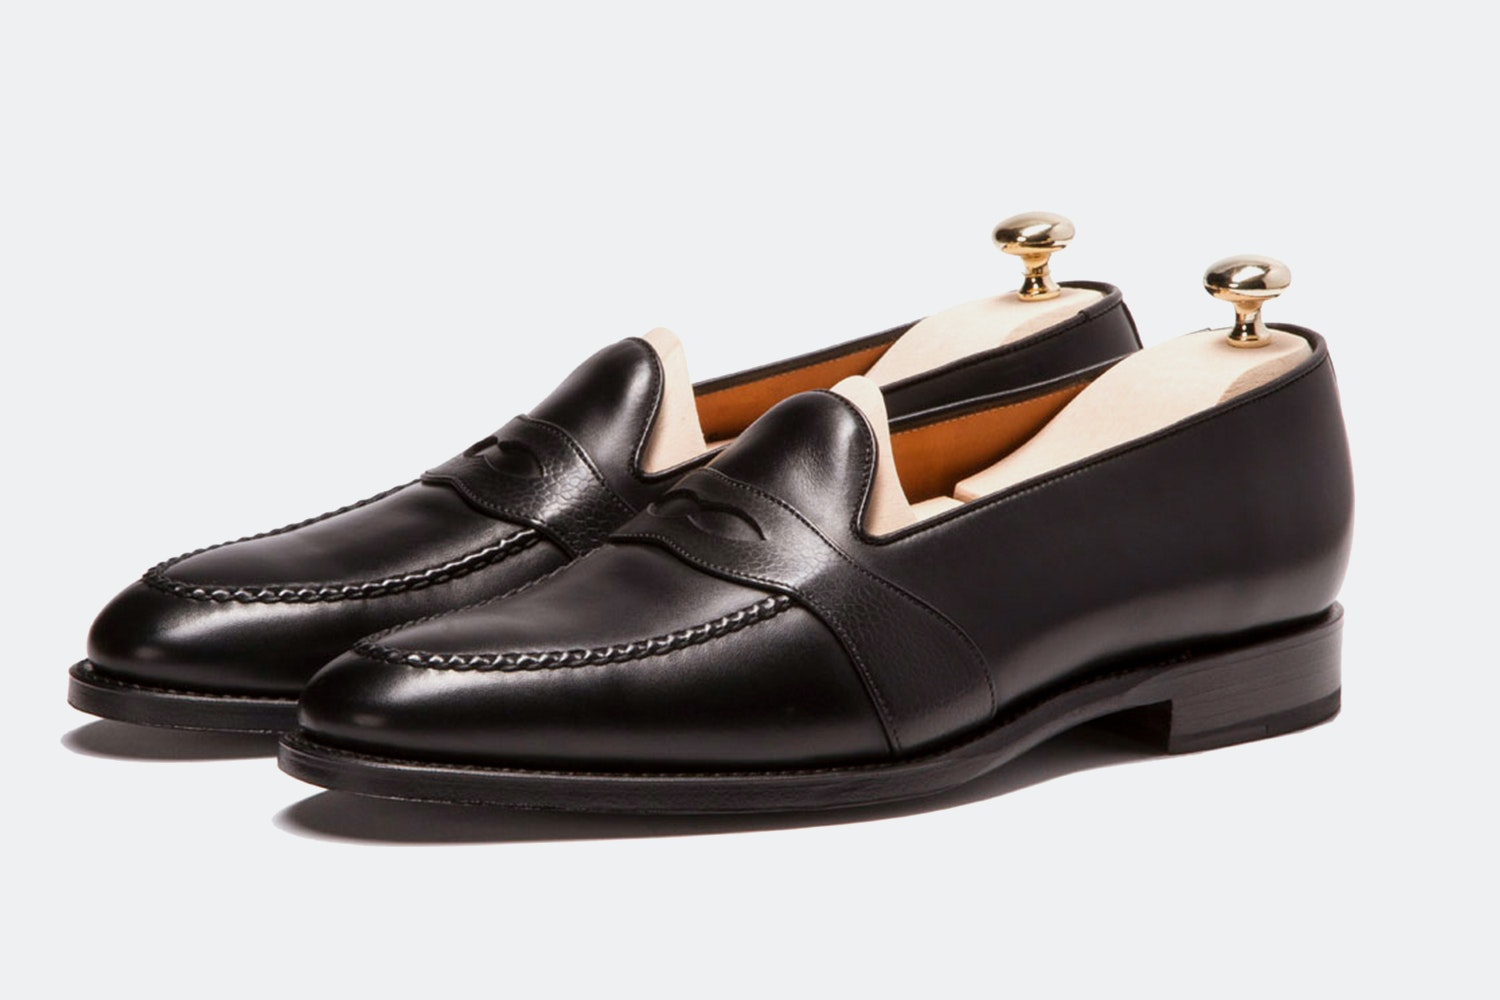 J.Fitzpatrick Madison Loafers